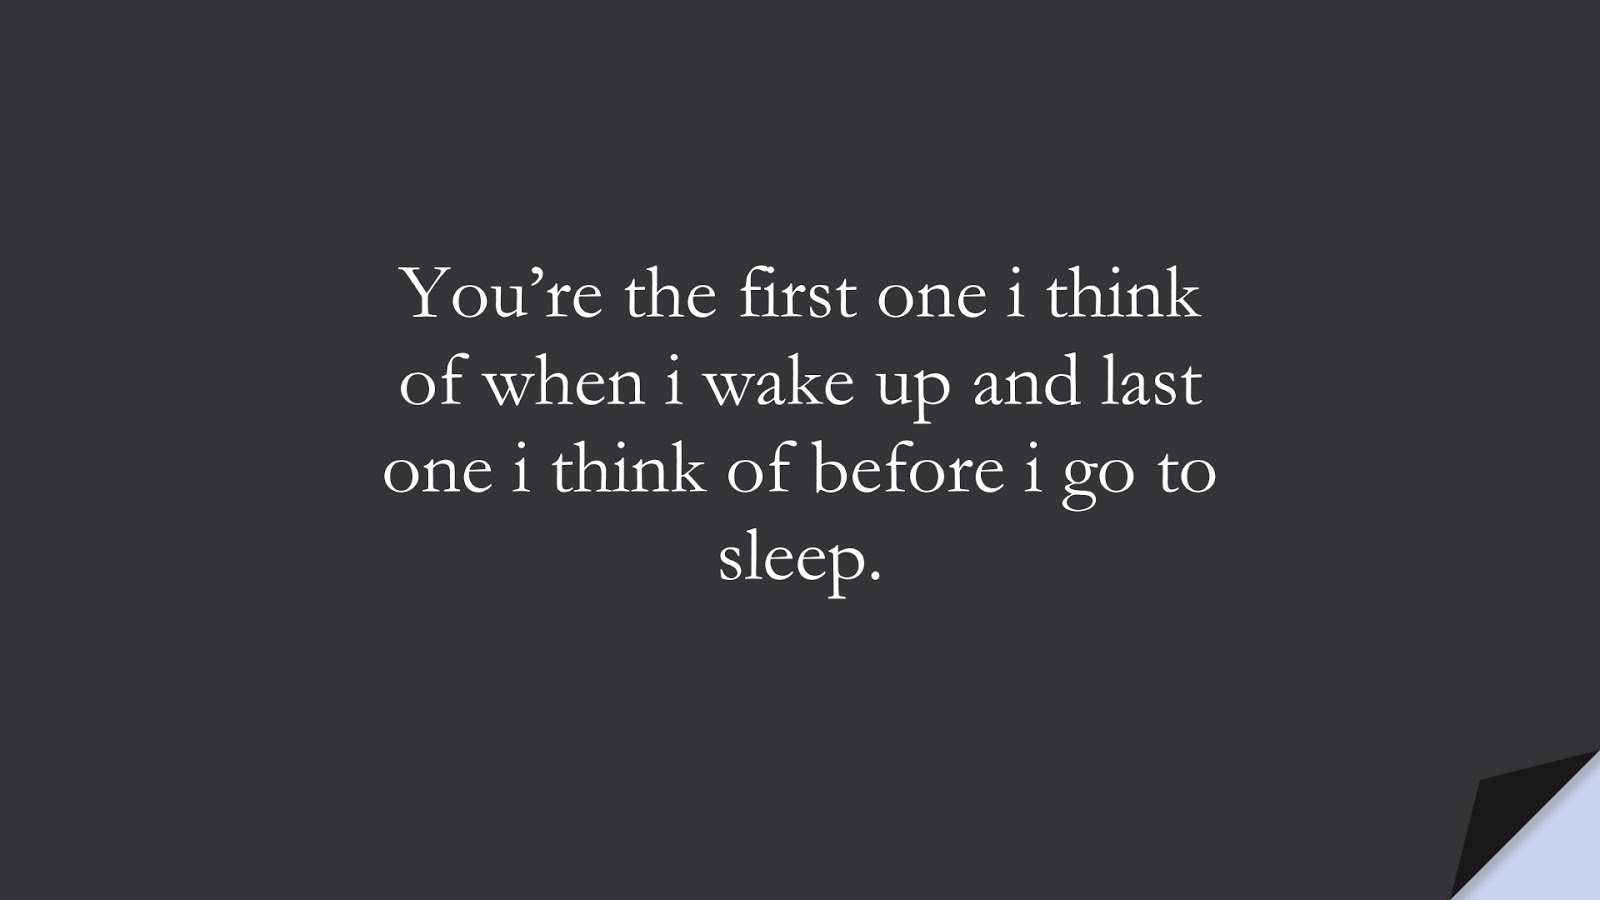 You're the first one i think of when i wake up and last one i think of before i go to sleep.FALSE